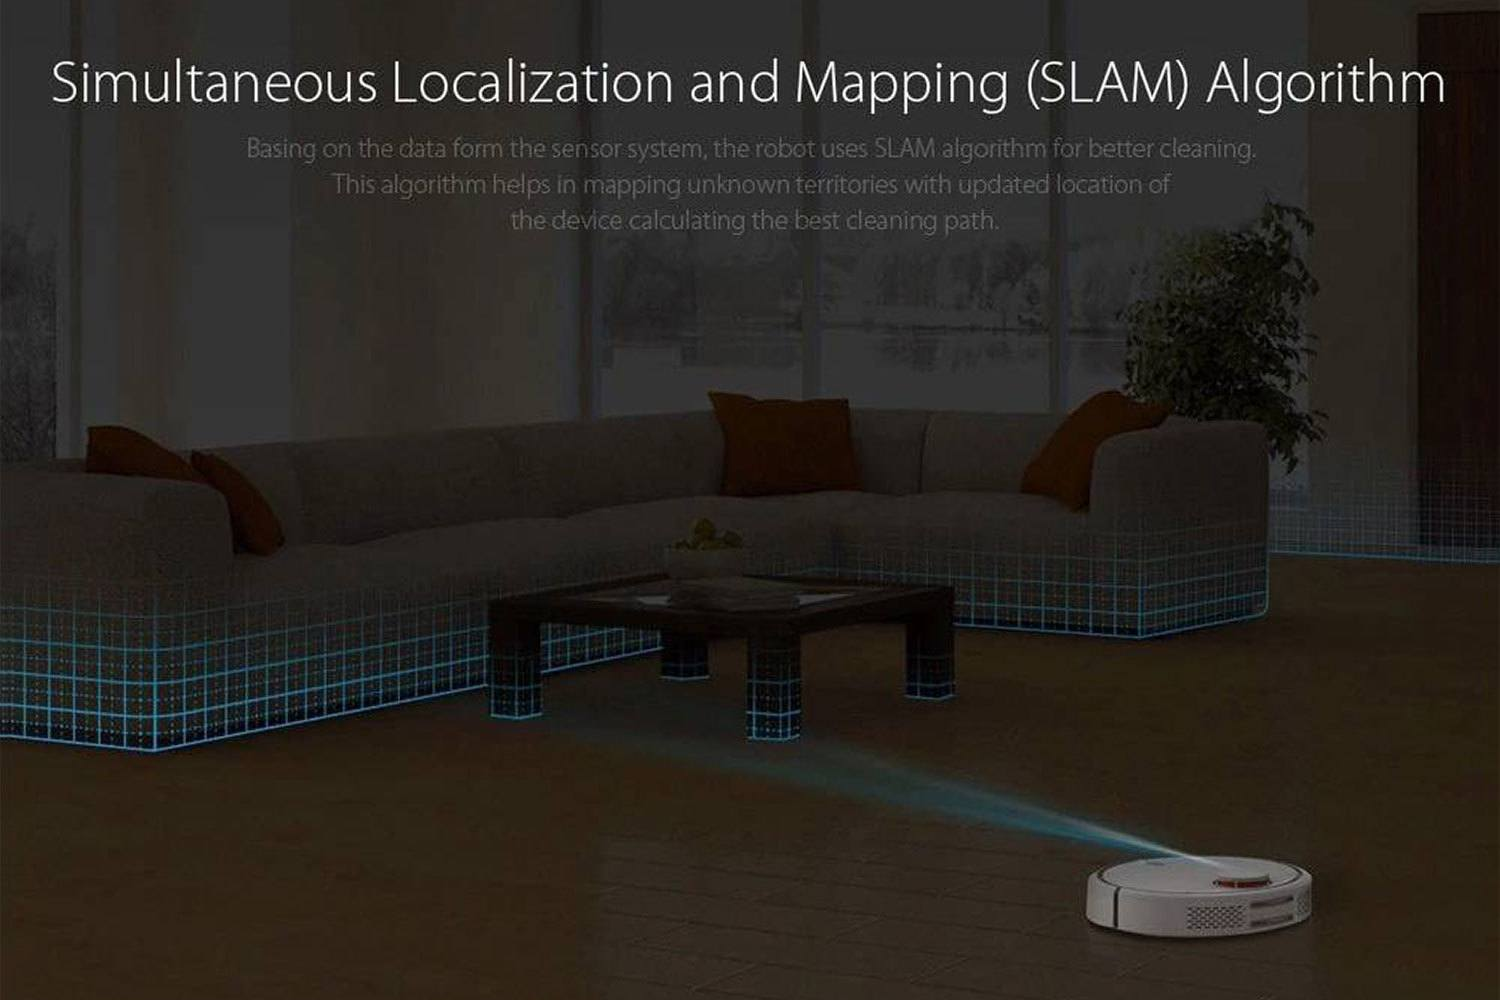 xiaomi mi robot vacuum vs roomba 980 mapping and navigation